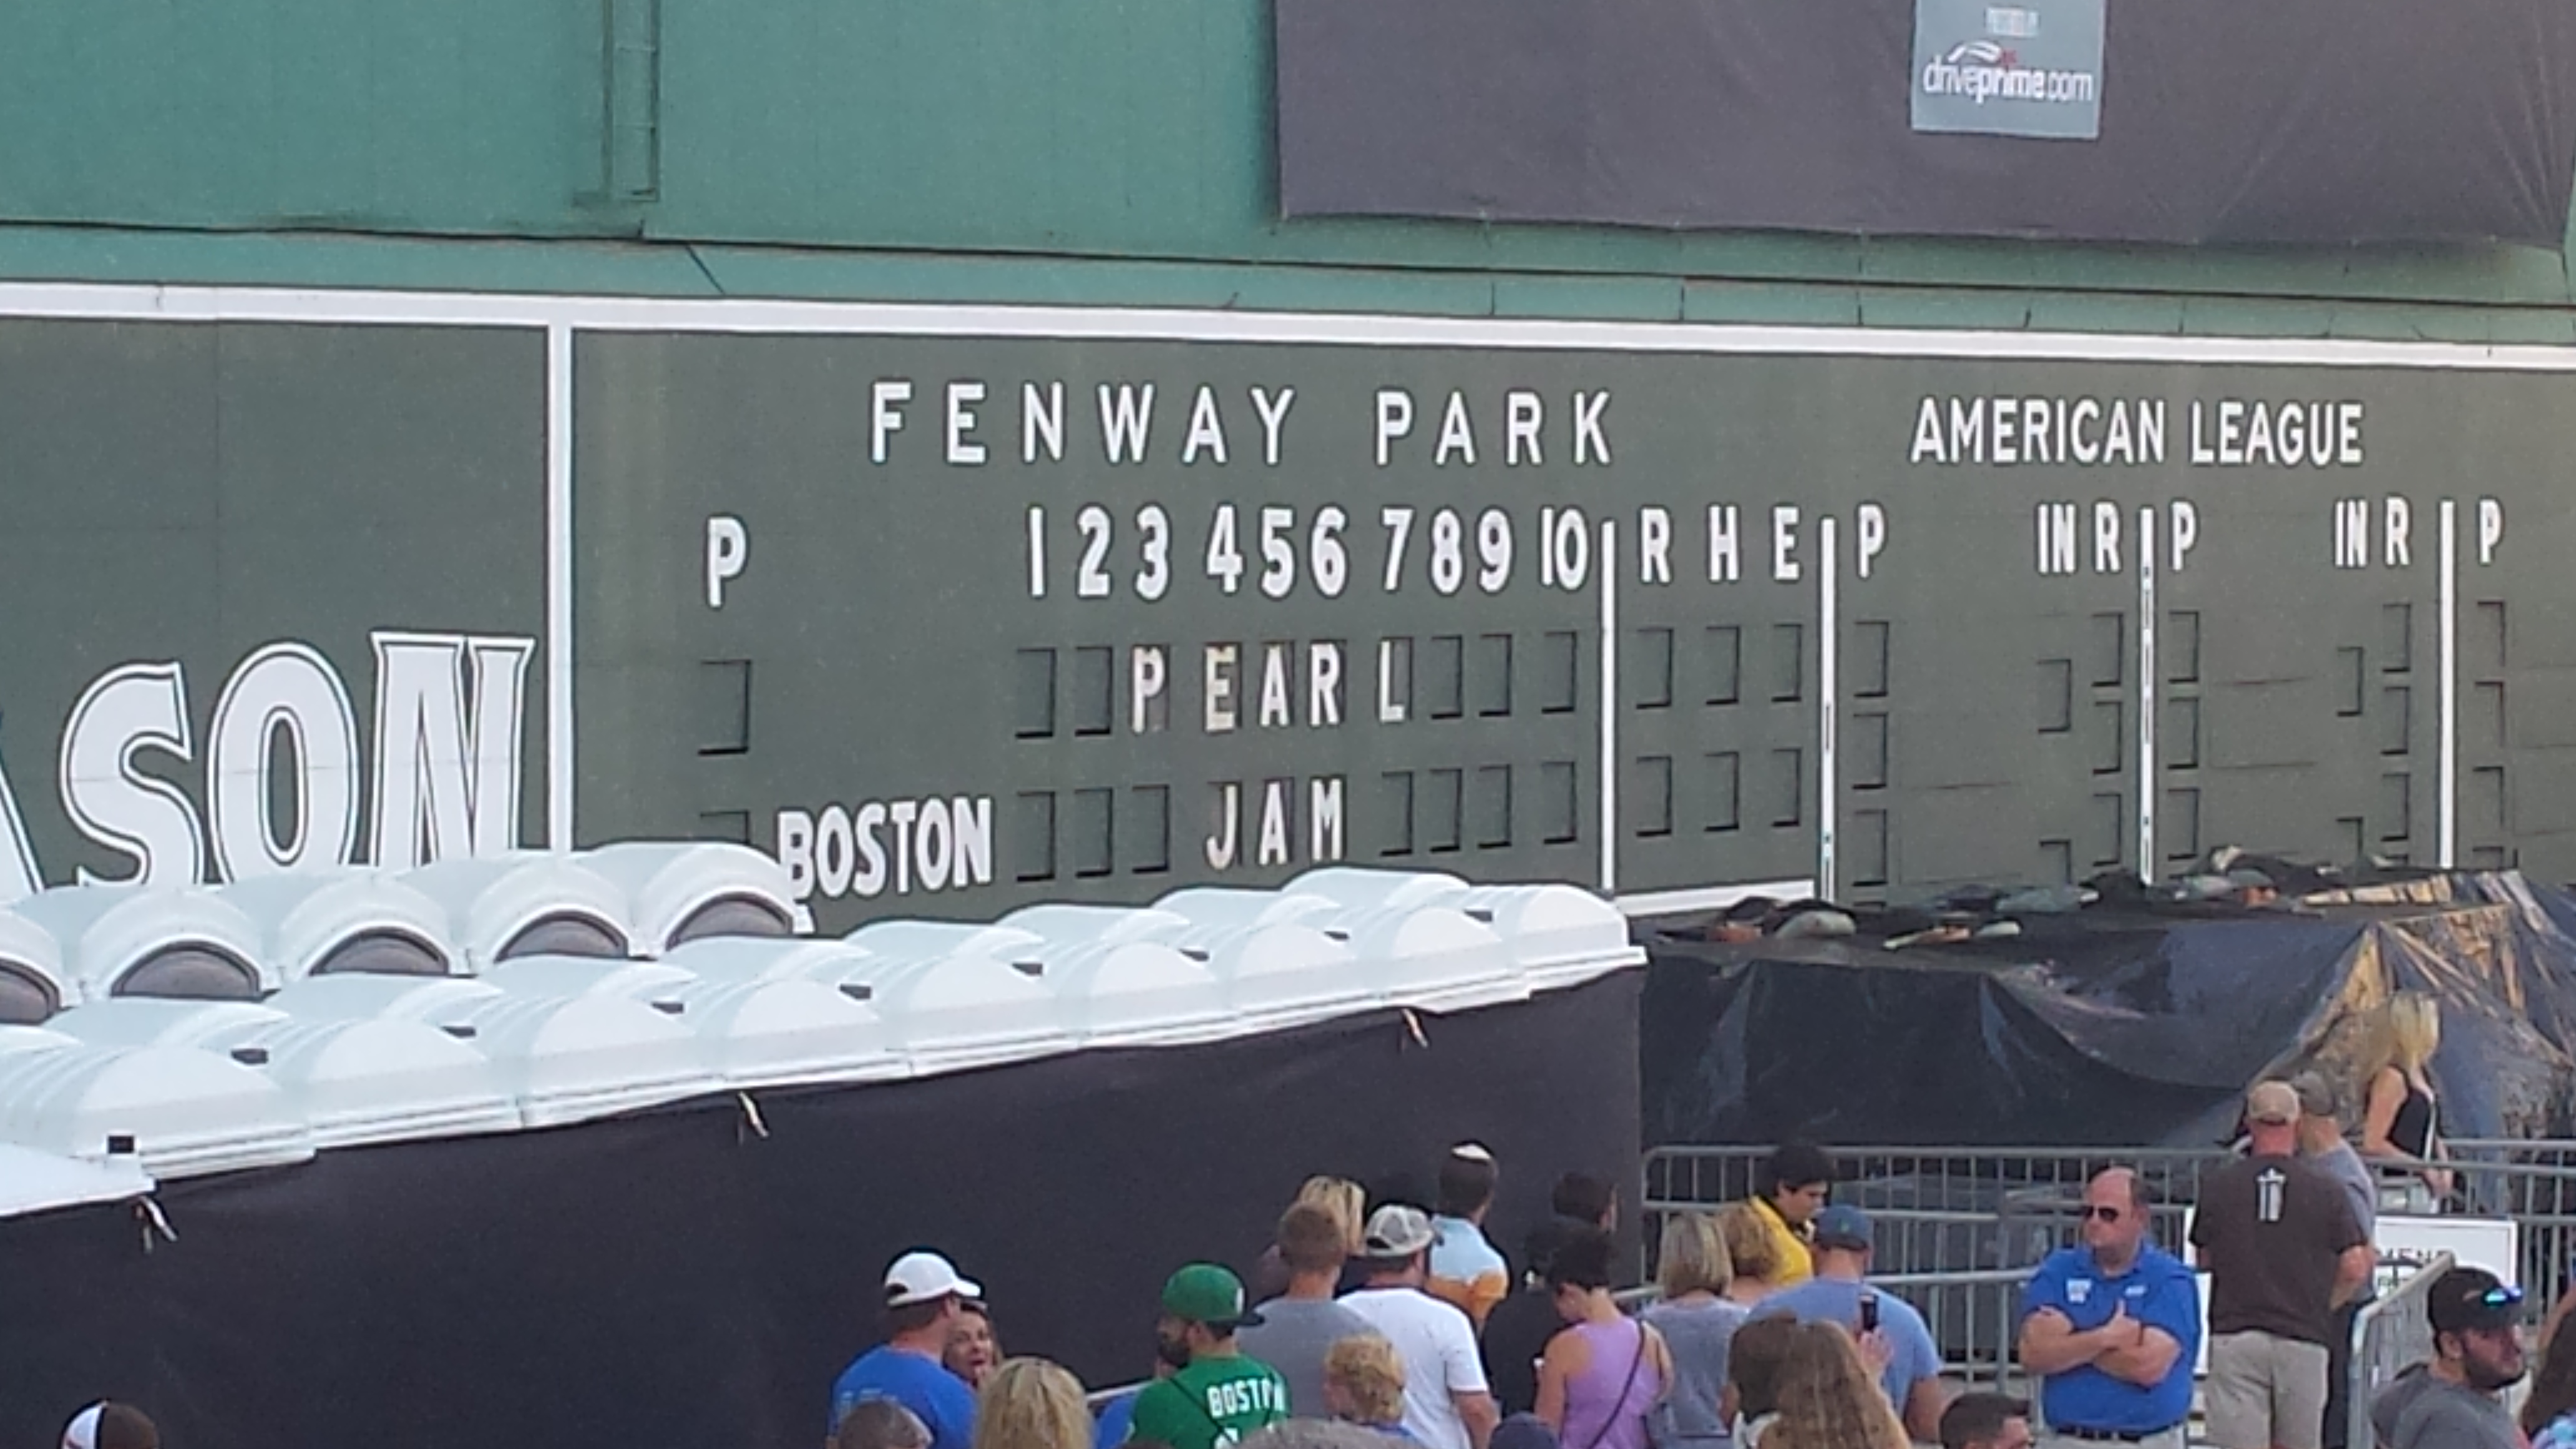 Pearl Jam (Fenway Park, Boston, MA, August 7, 2016 & Ten Club Screening of  August 5 show, House of Blues, Boston, MA, August 6, 2016)